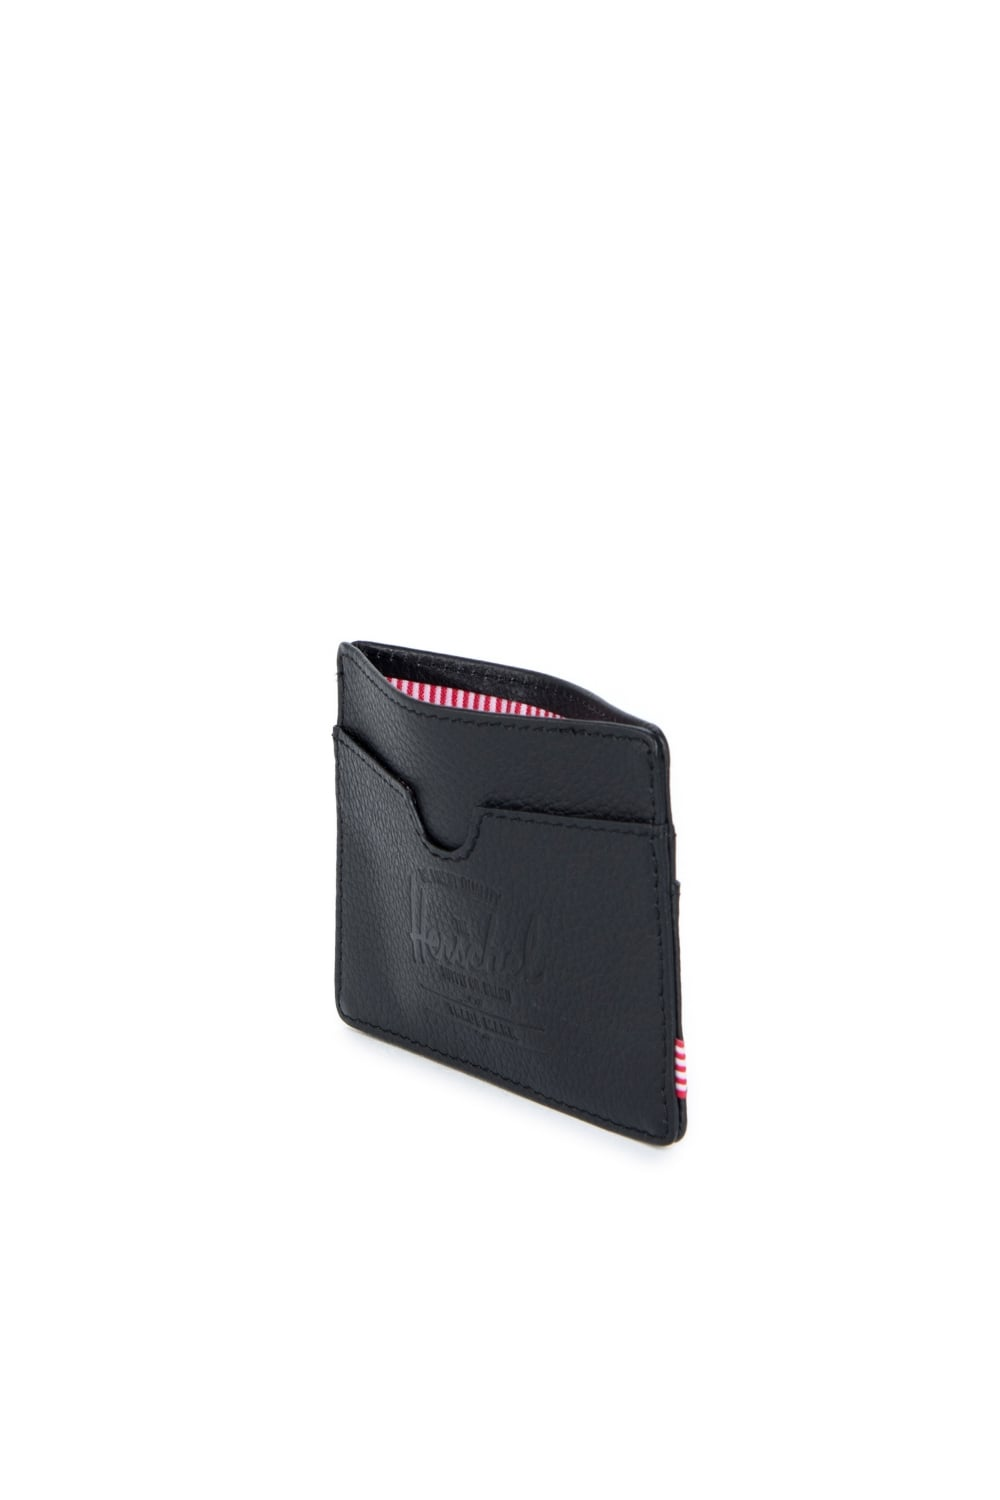 068348520d82 Herschel Supply Co. Charlie RFID Wallet (Nubuck Leather)